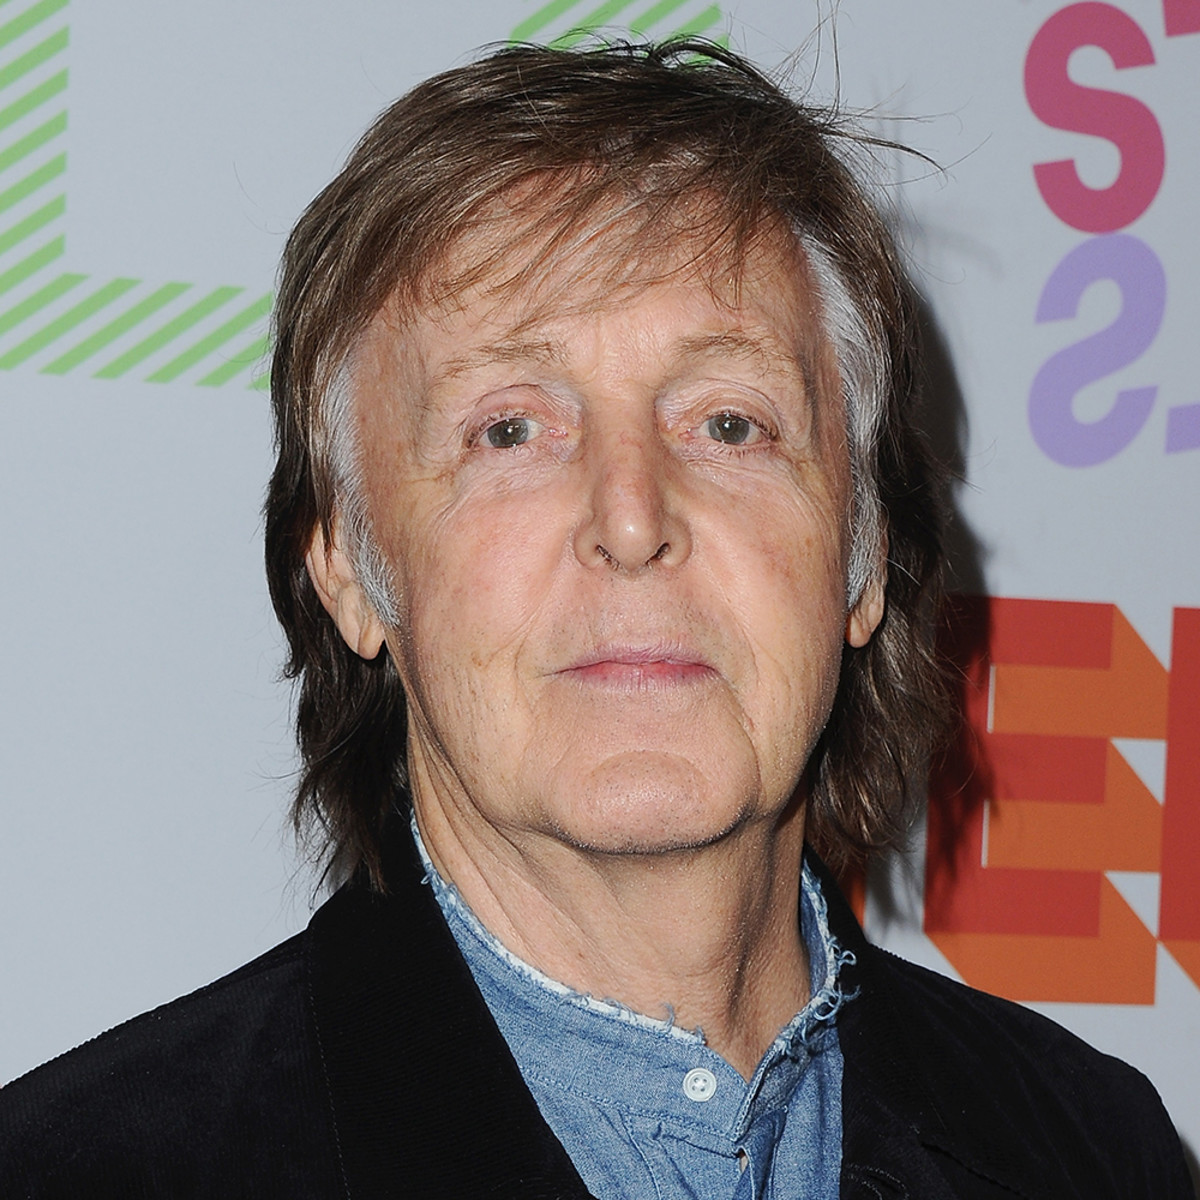 Paul Mccartney Is Not Dead And Neither Is The Past Rolling Stone